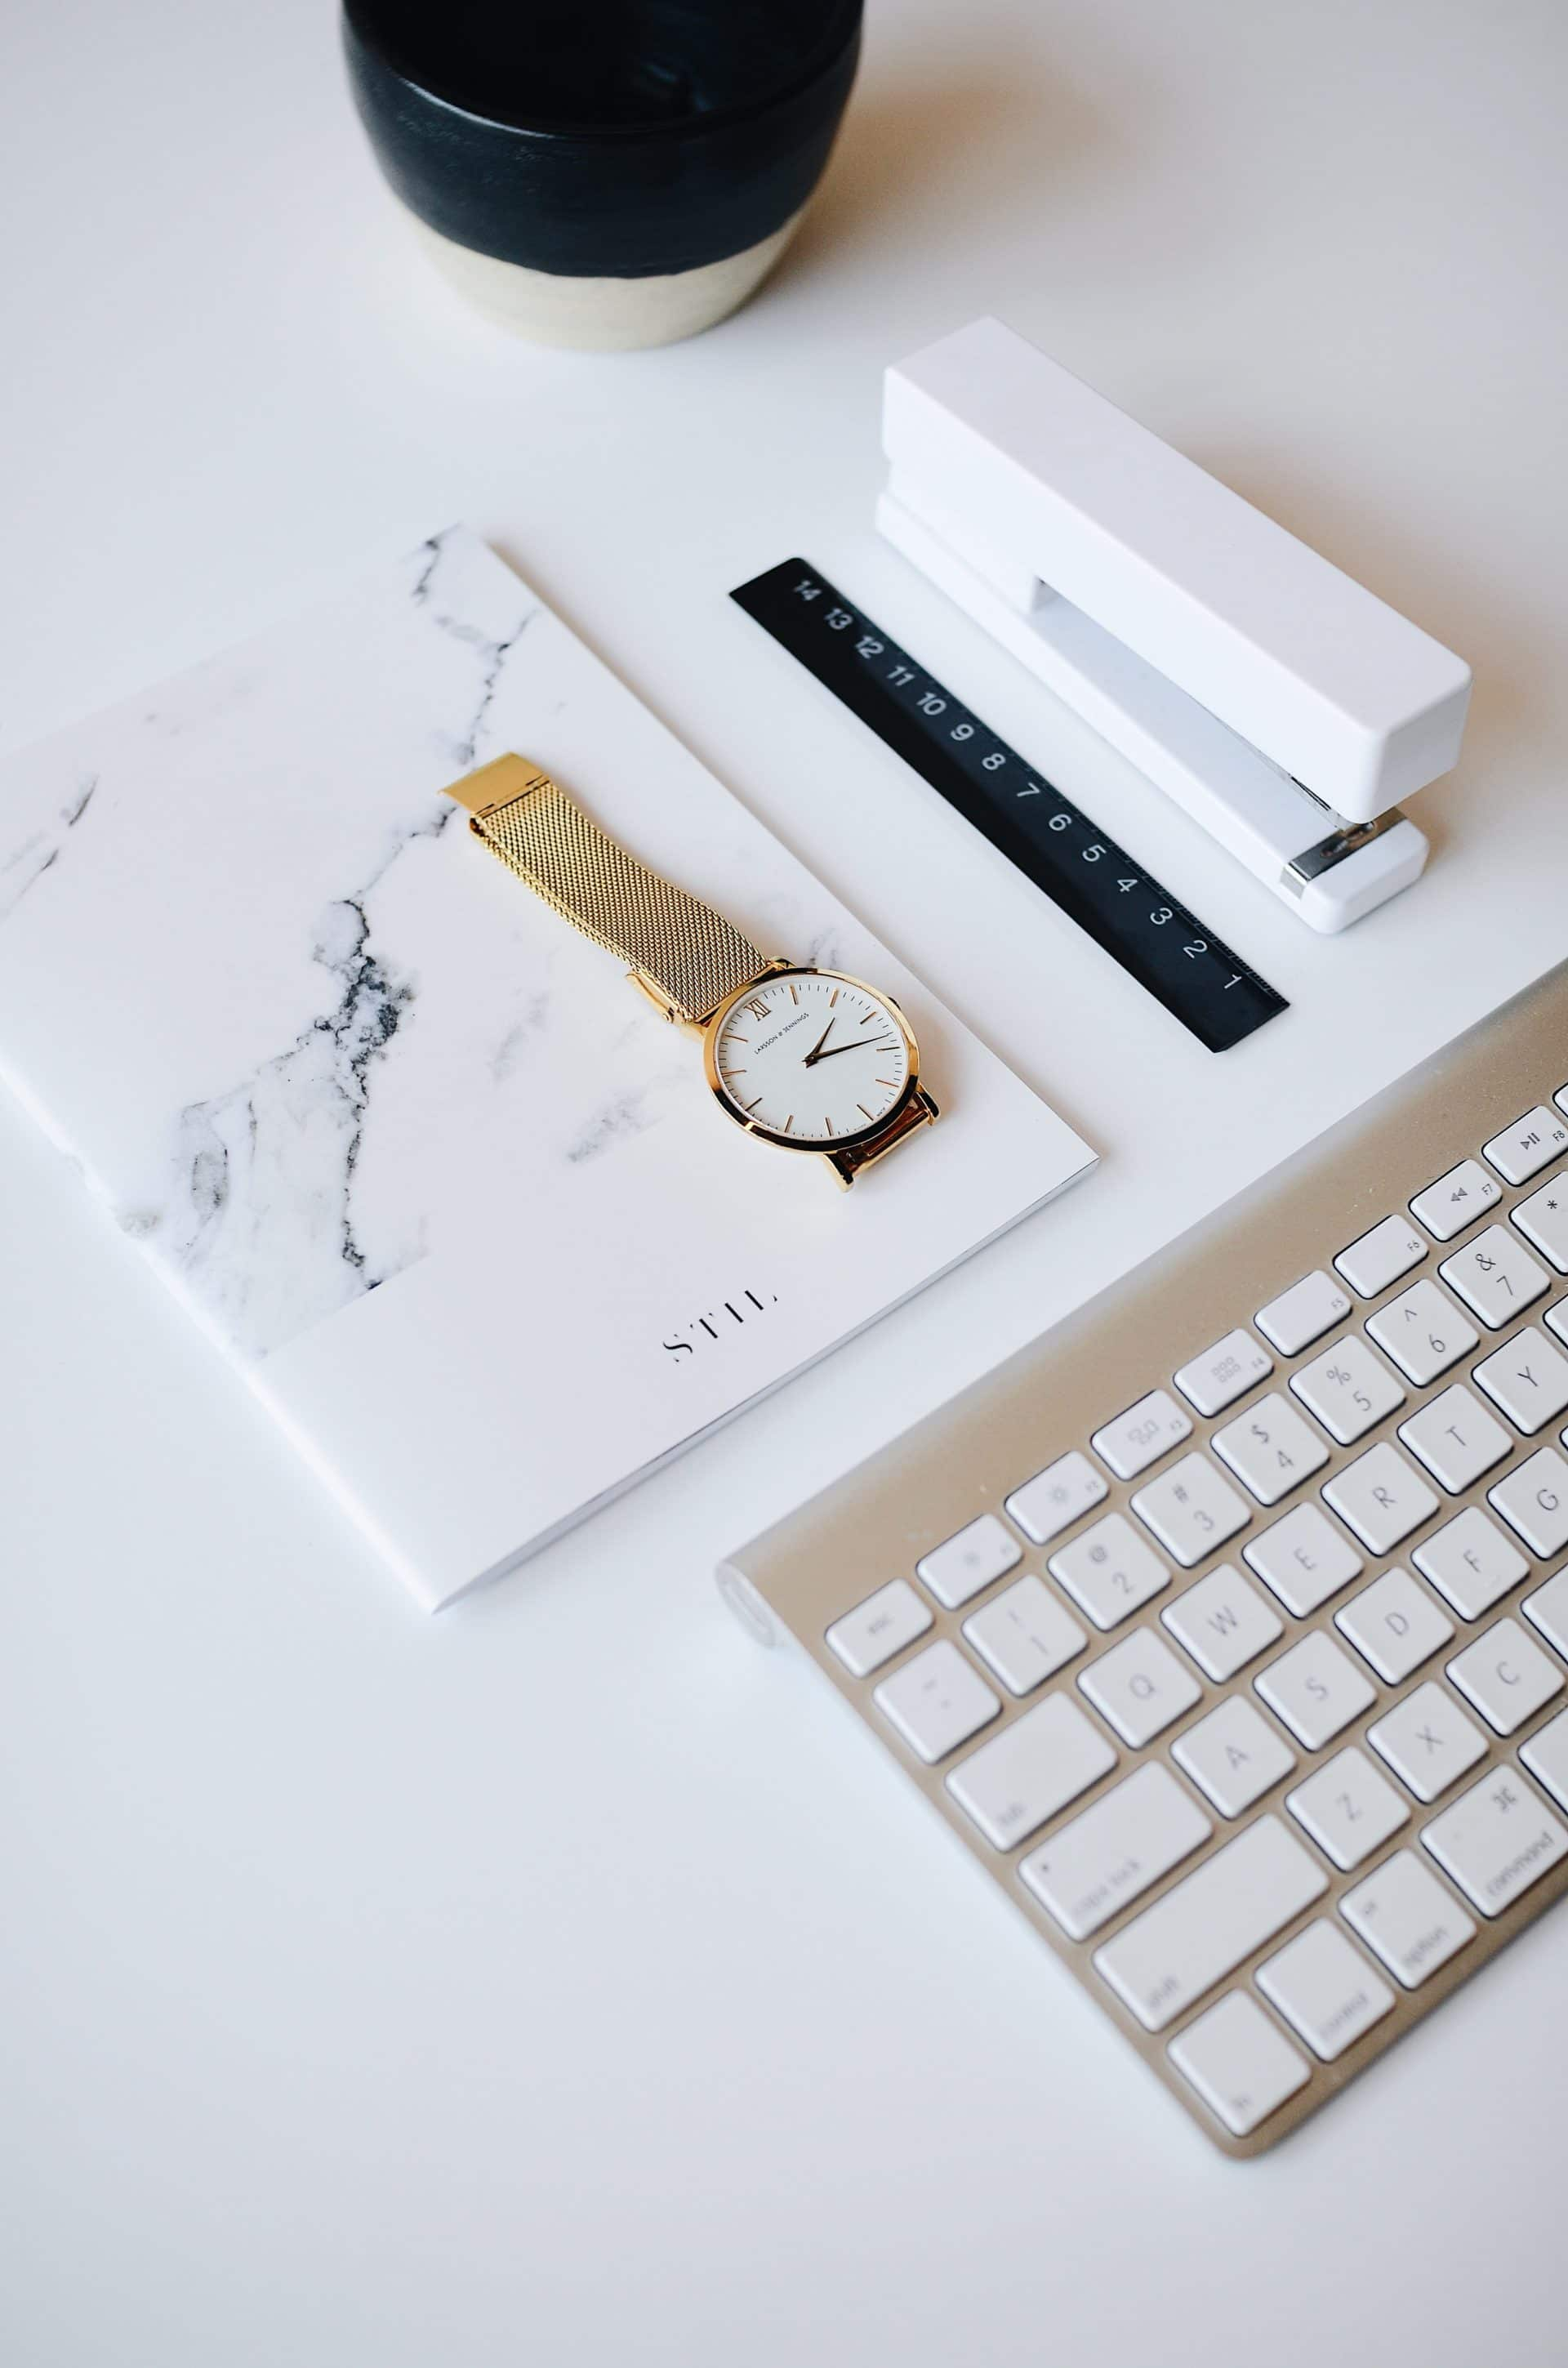 Picture of key board, watch and stationary for Real Estate News for Investors Podcast Episode #579